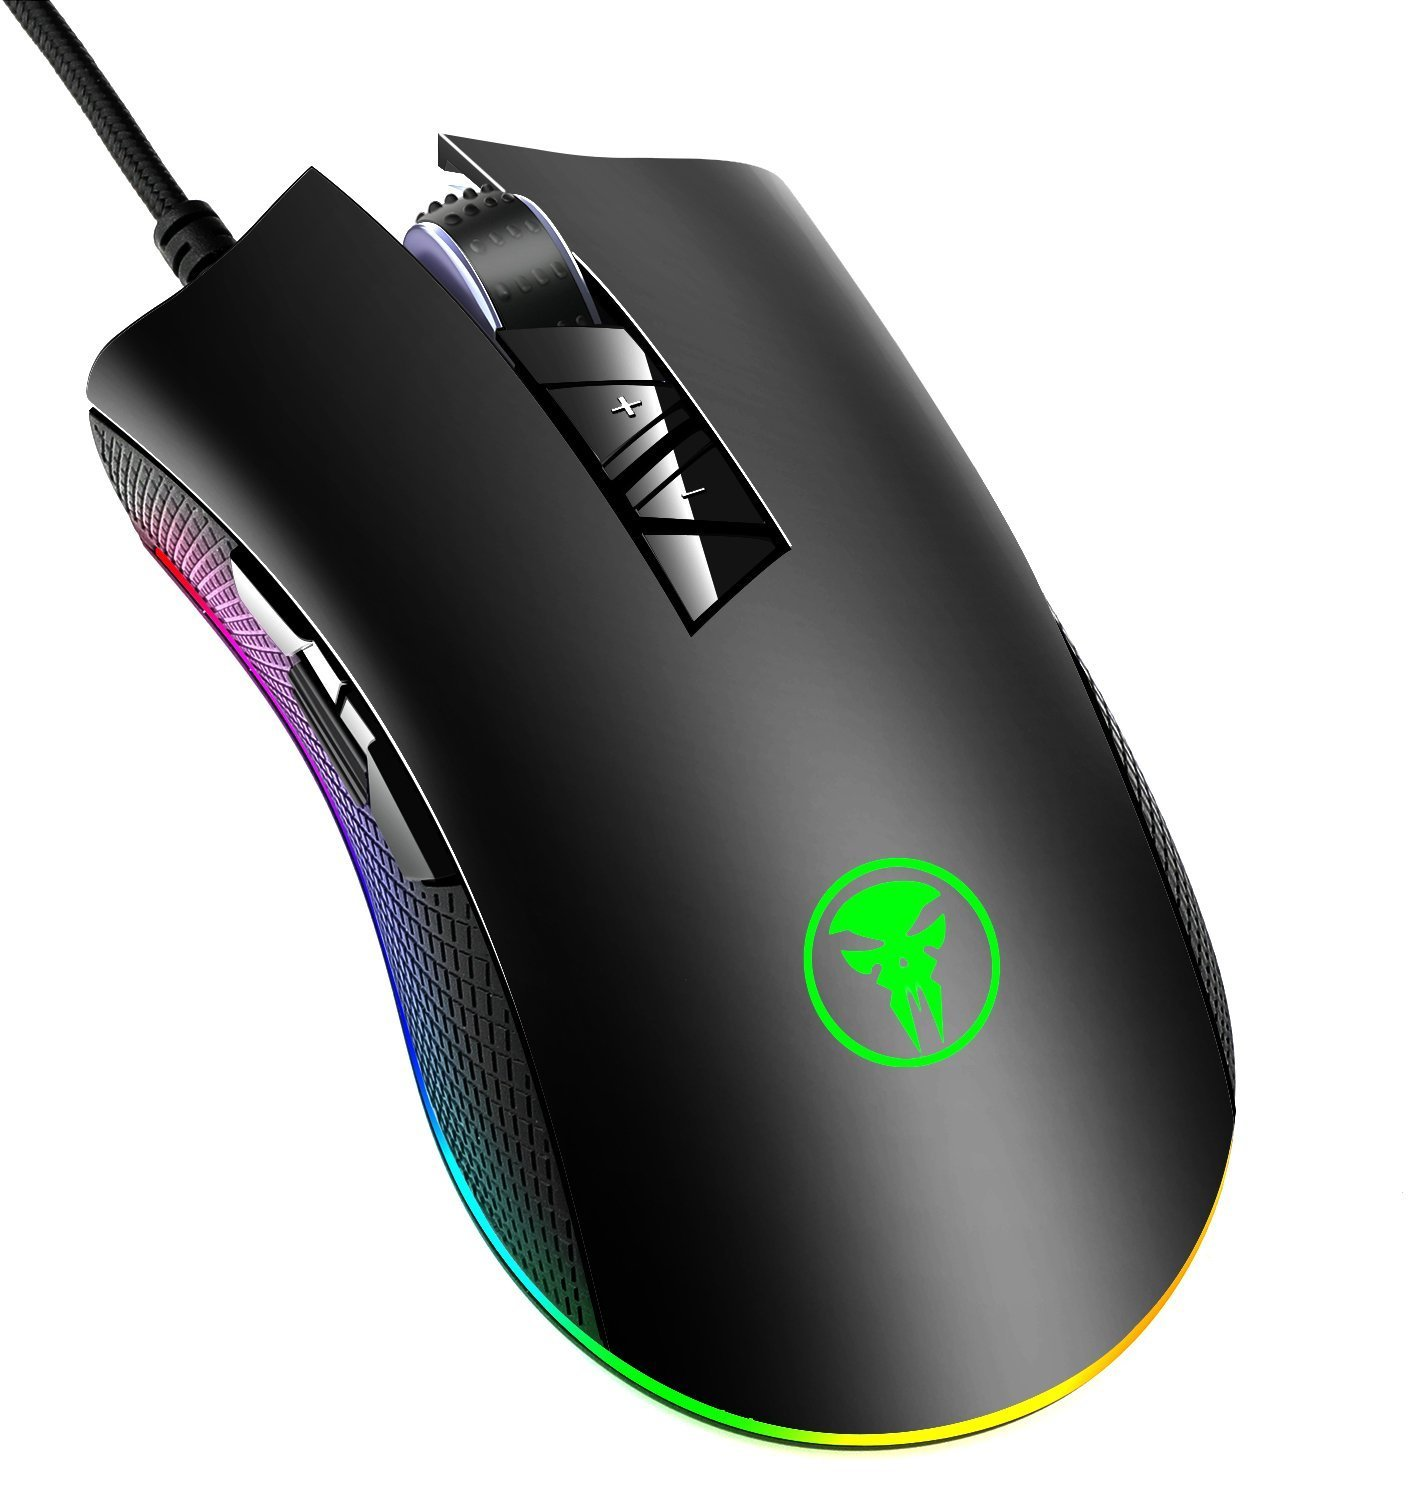 YockTec RGB Tunable Gaming Mouse,Programmable 7-button design with scroll wheel Gaming Mouse - 4000 DPI Sensor -Comfortable Grip -The eSports Gaming Mouse,Black (Black)